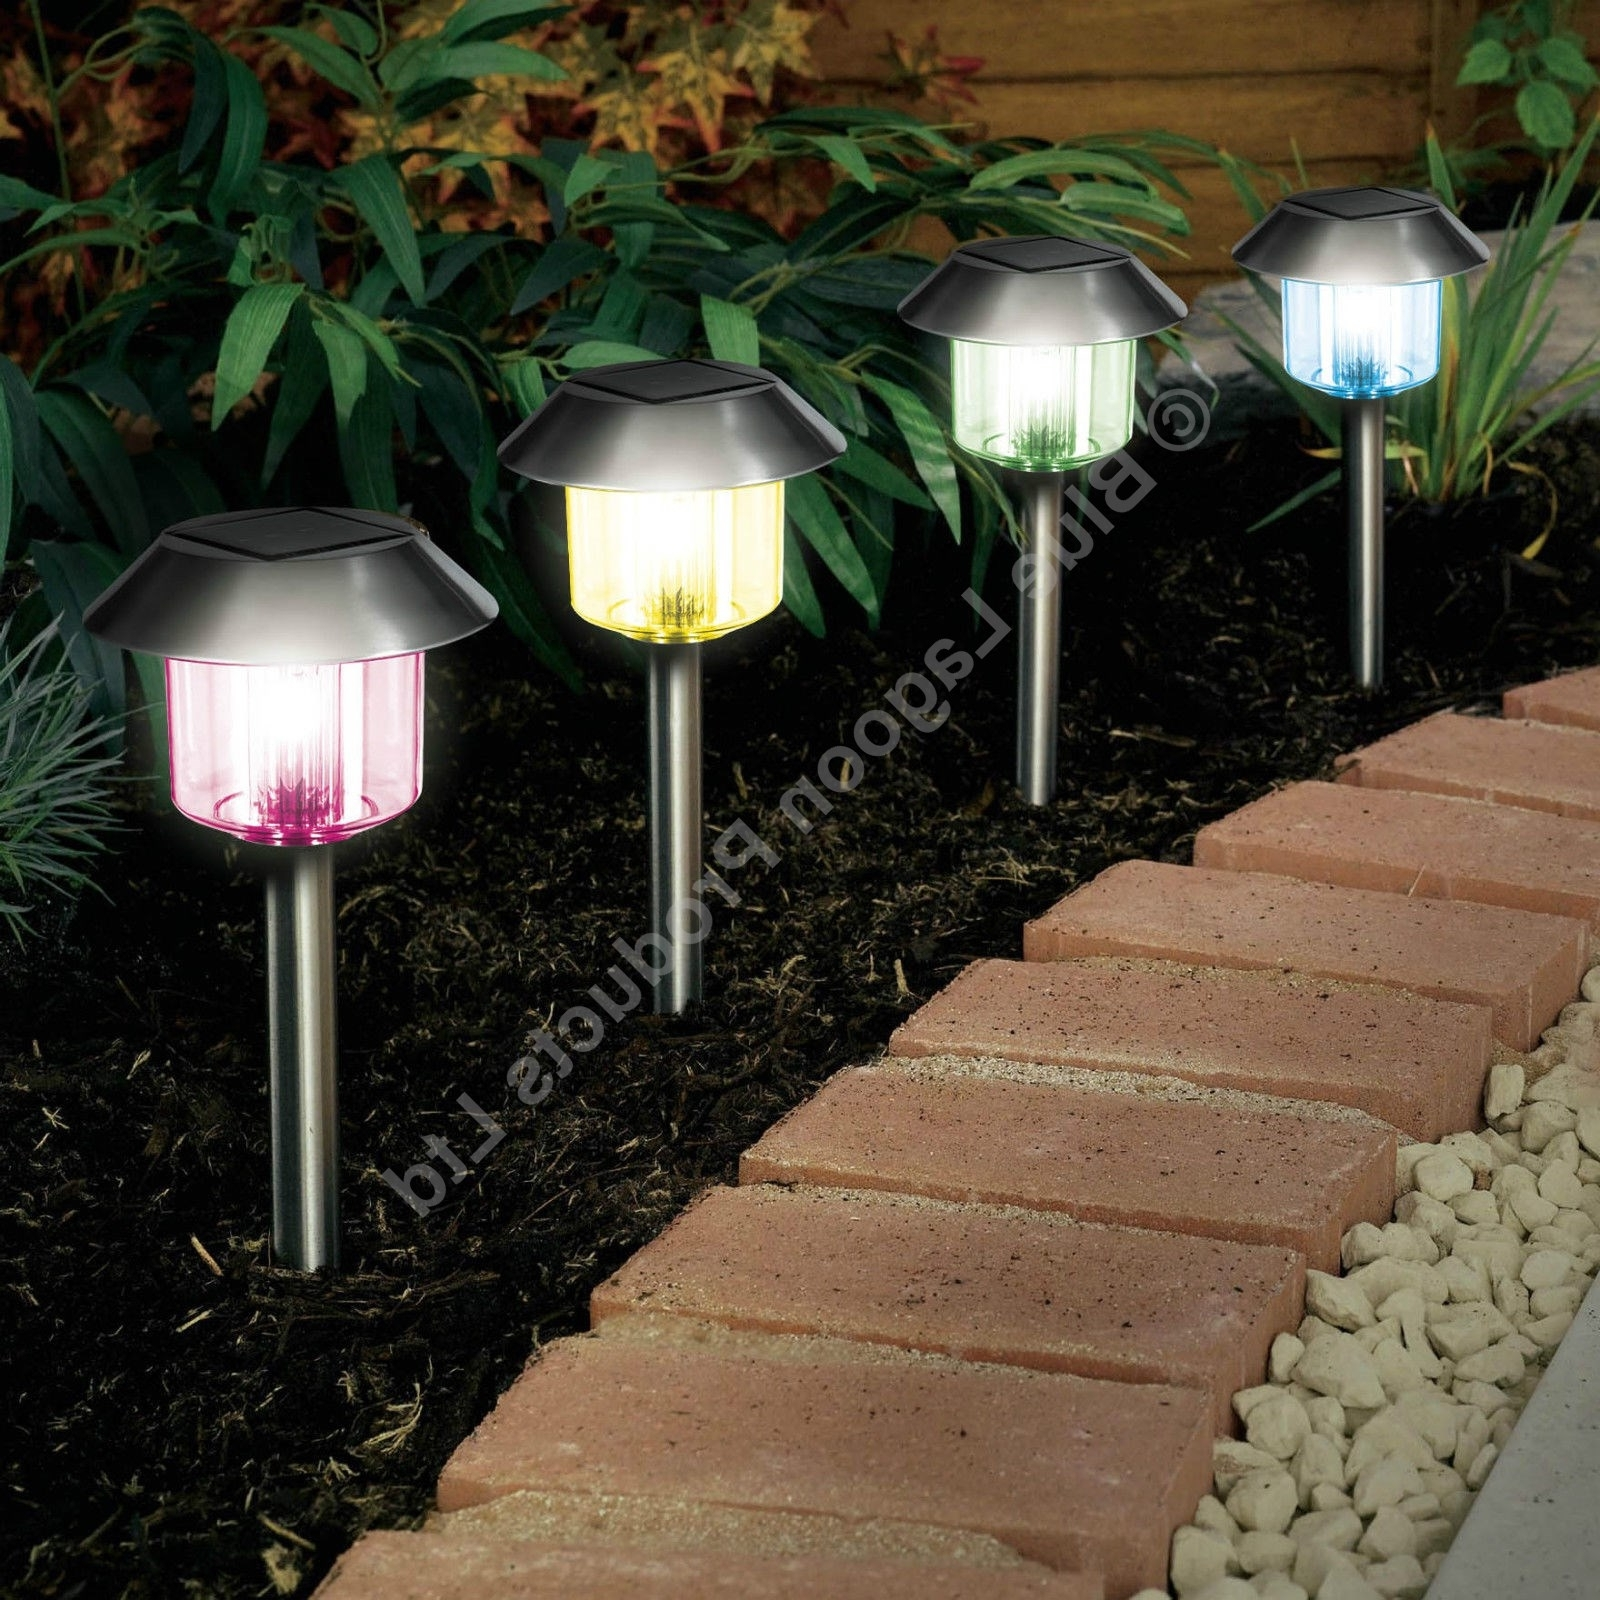 Amazing Of Outdoor Lawn Lights Yard Light Solar Shrubs Landscaping With Current Outdoor Lawn Lanterns (View 8 of 20)